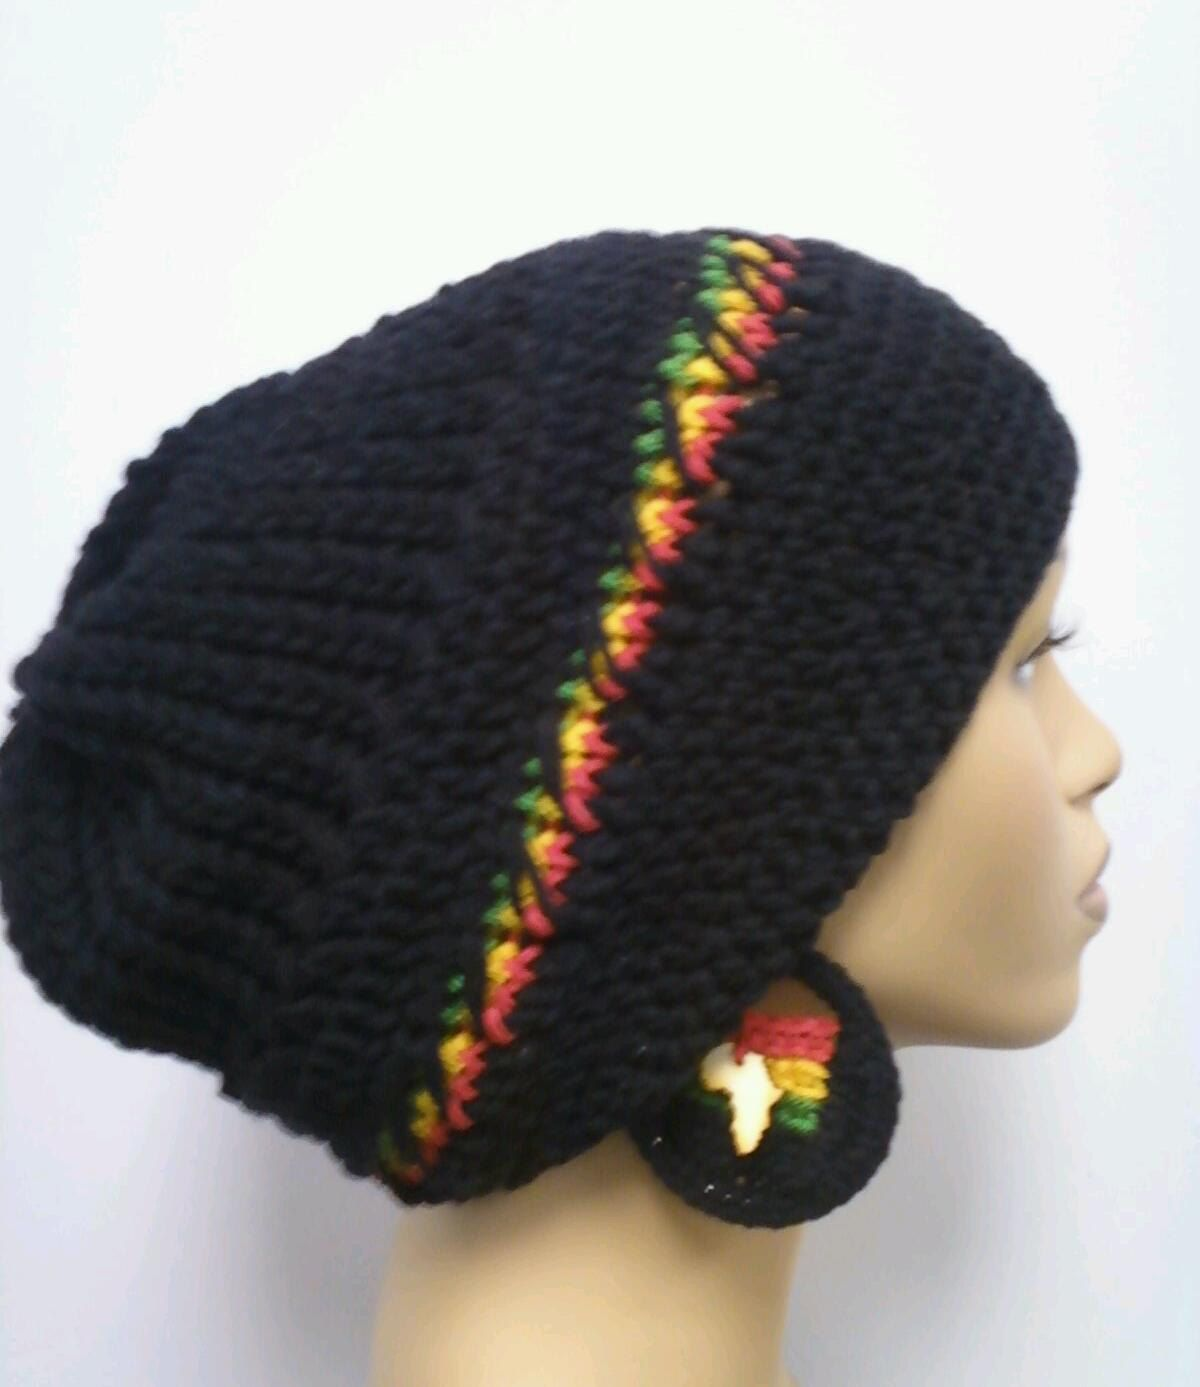 Chicas Libres Black Slouch Hat Dreadlock Hat With Rasta Stripes Red